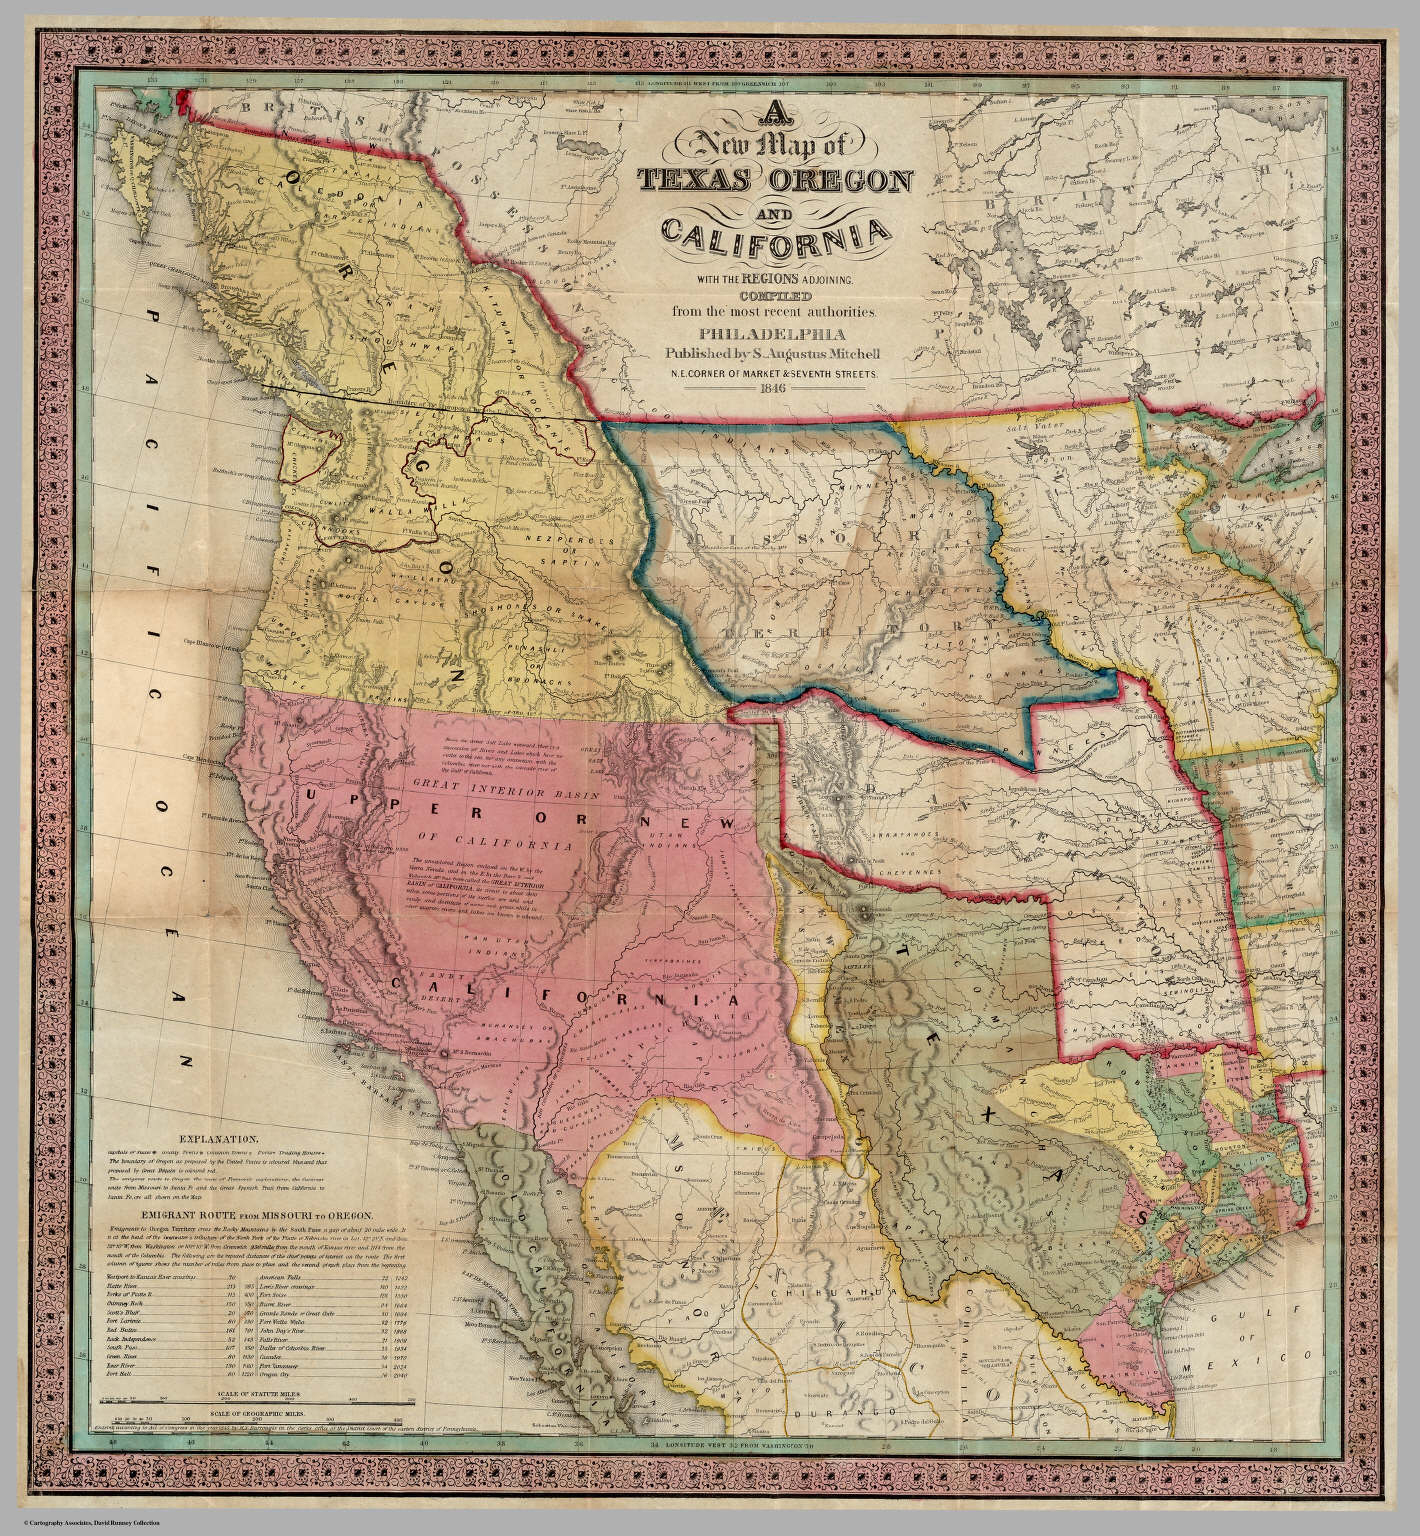 A New Map Of Texas Oregon And California With The Regions Adjoining - Oregon California Map